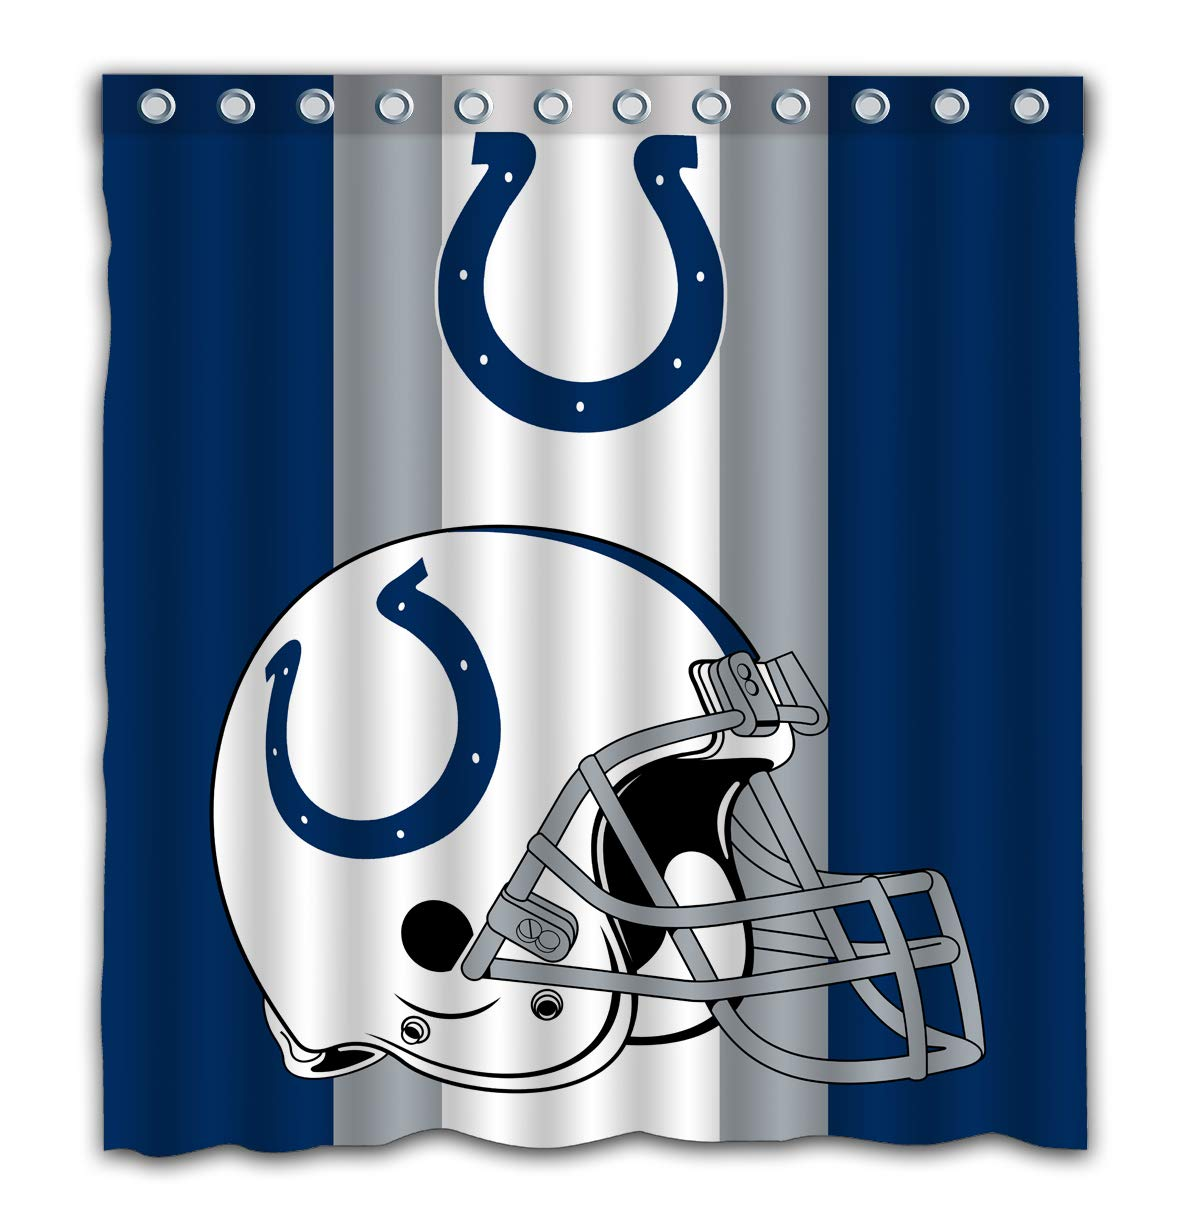 Amazon Potteroy Indianapolis Colts Team Simple Design Shower Curtain Waterproof Mildew Proof Polyester Fabric 66x72 Inches Home Kitchen